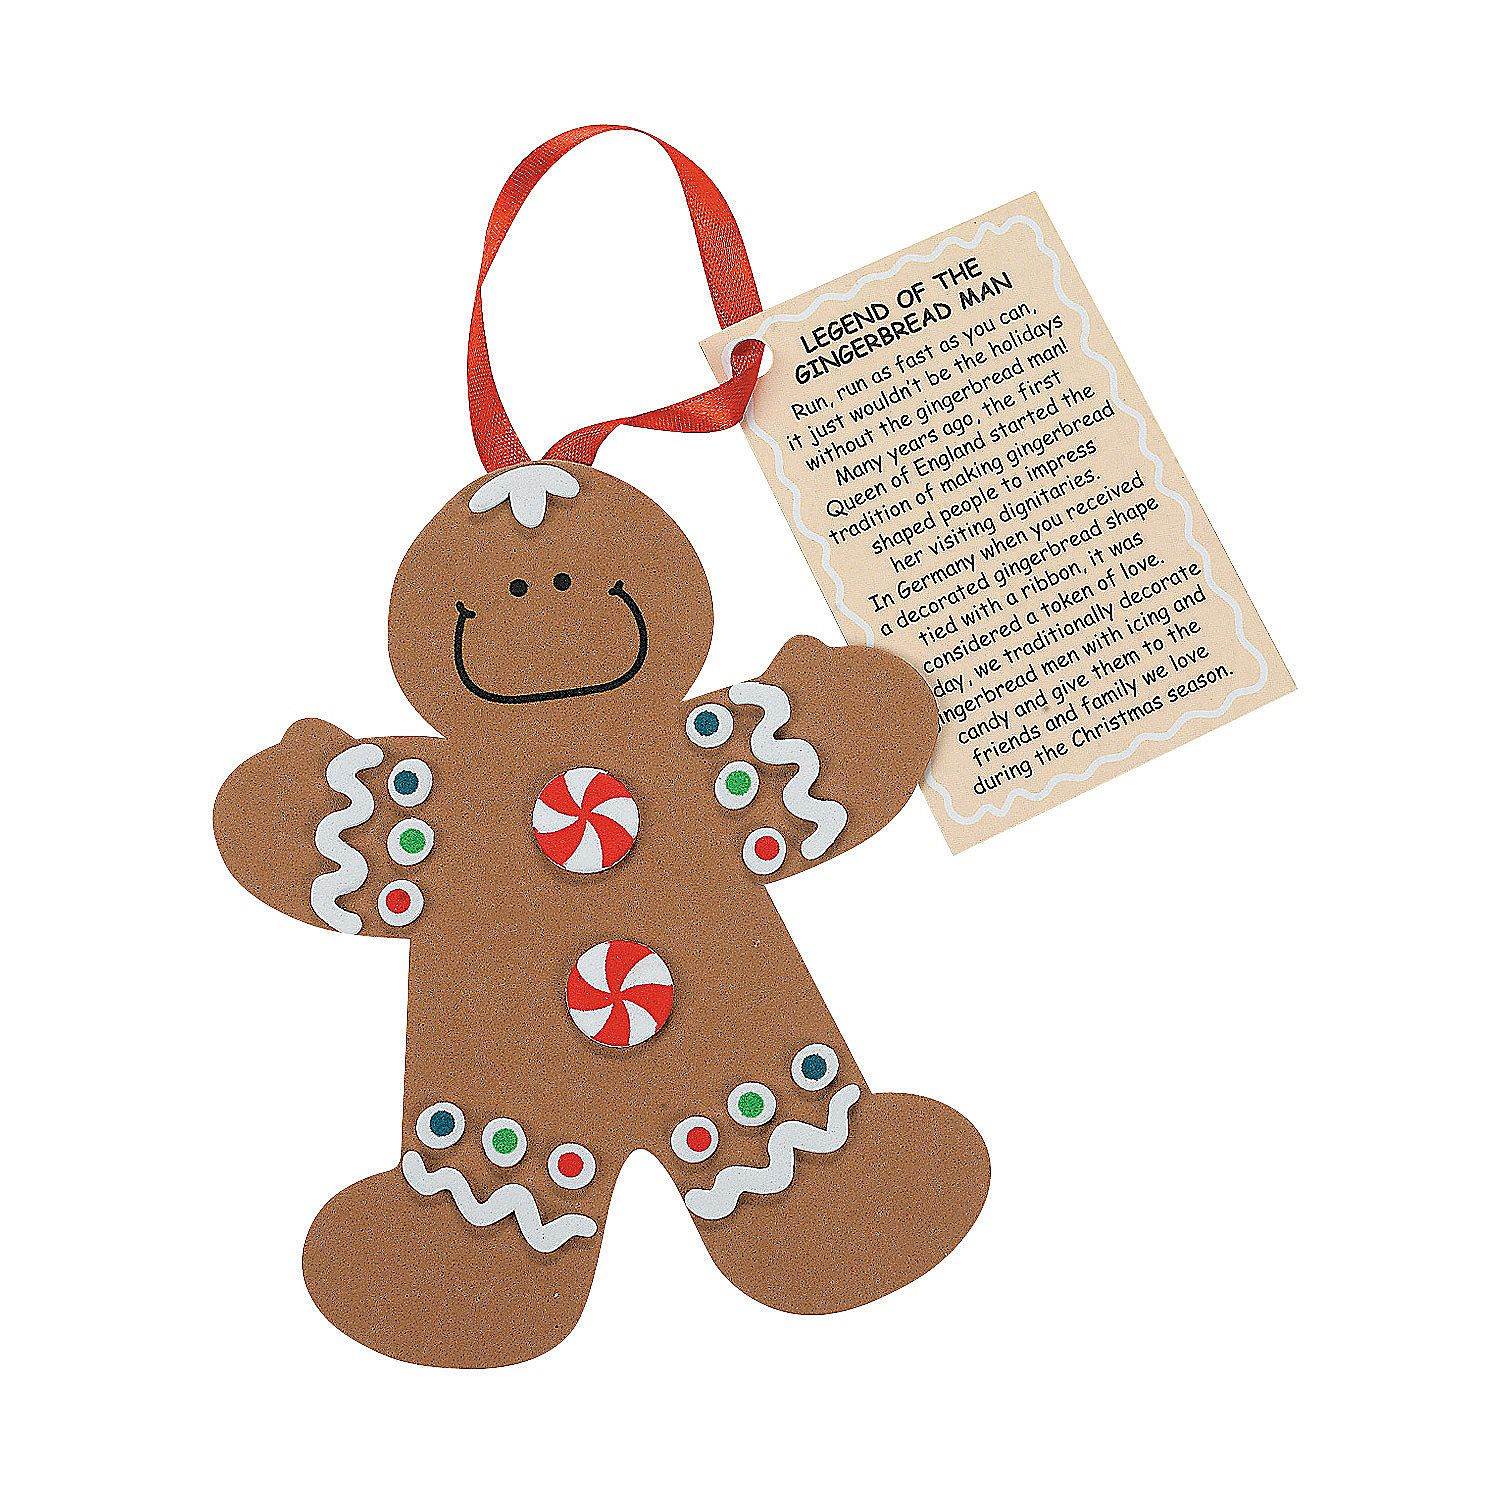 Legend Of The Gingerbread Man Christmas Ornament Craft